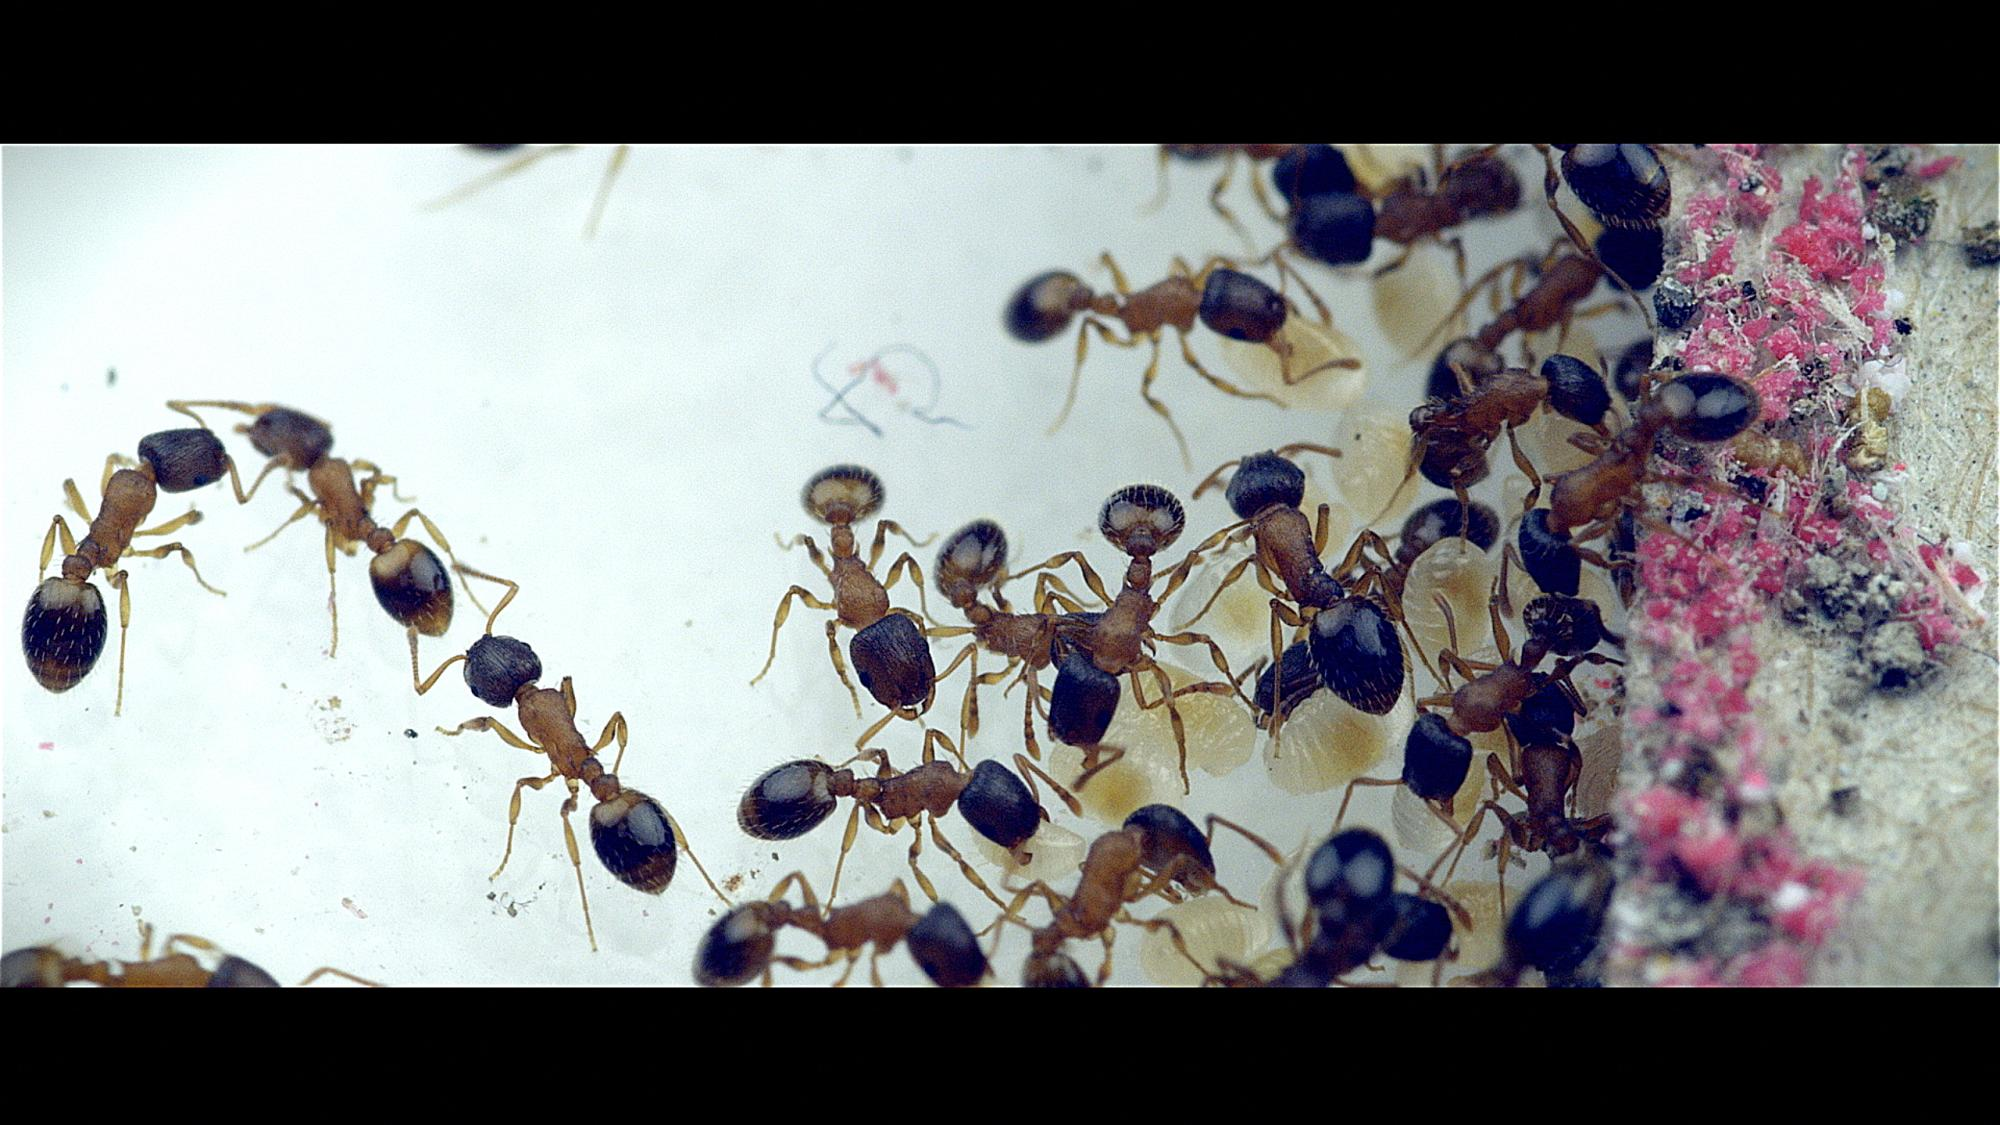 Ants of the species Temnothorax rugulatus live in mountainous areas of the Southwest. Here, workers perform chores inside a nest in the lab.